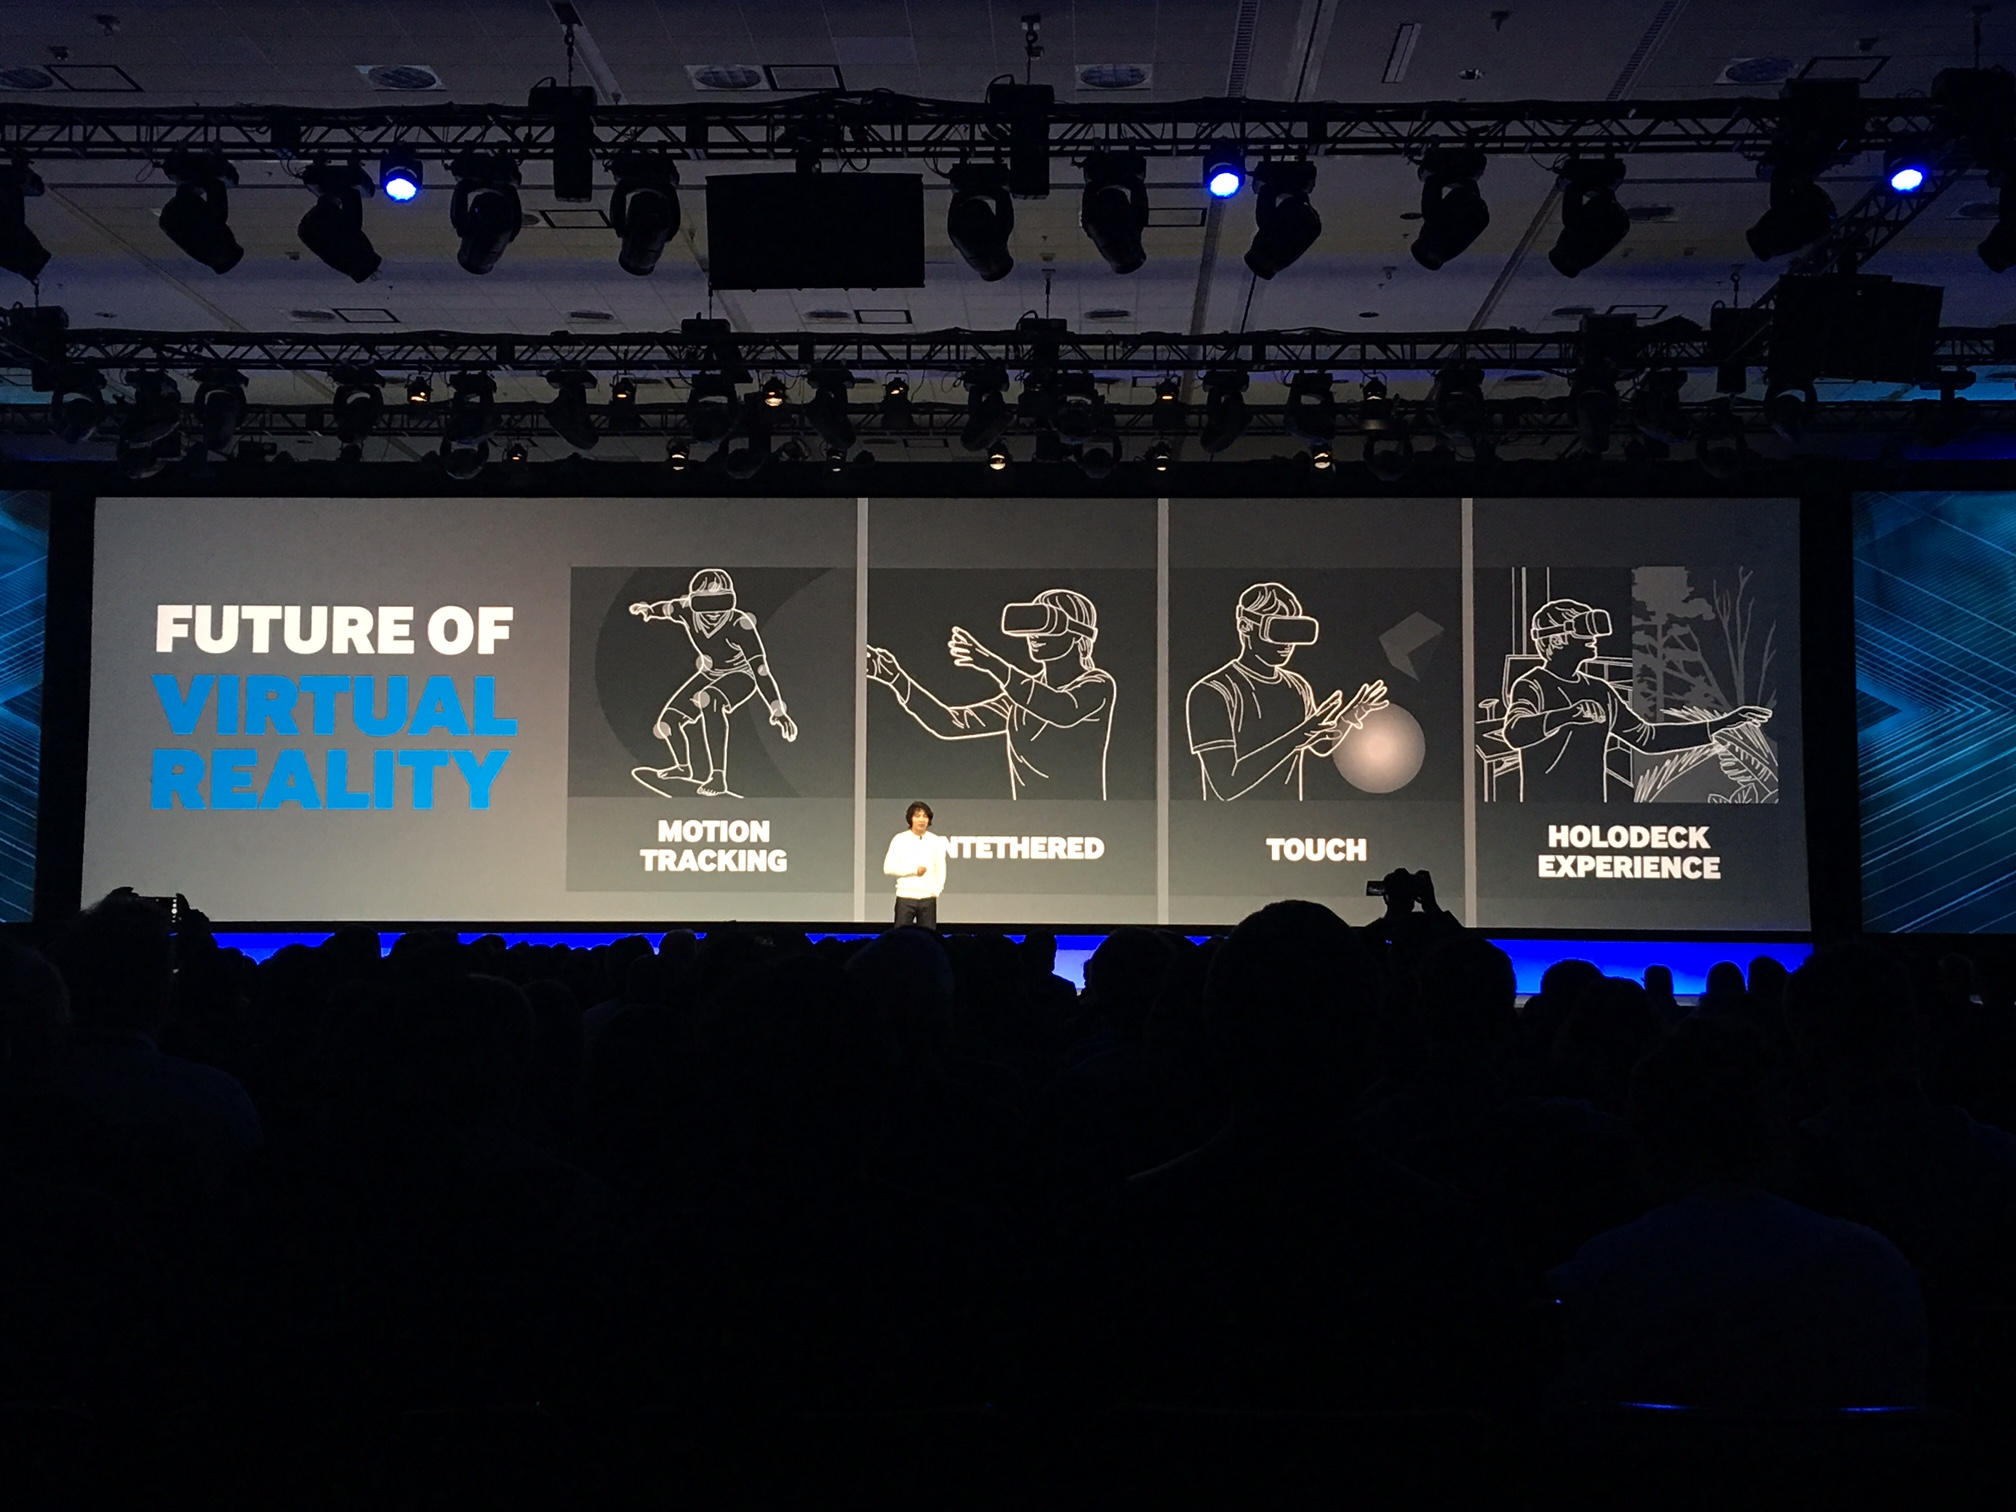 Injong Rhee, executive vice president and head of R&D for software and services in Samsung's mobile business, gives hints about the future of virtual reality.